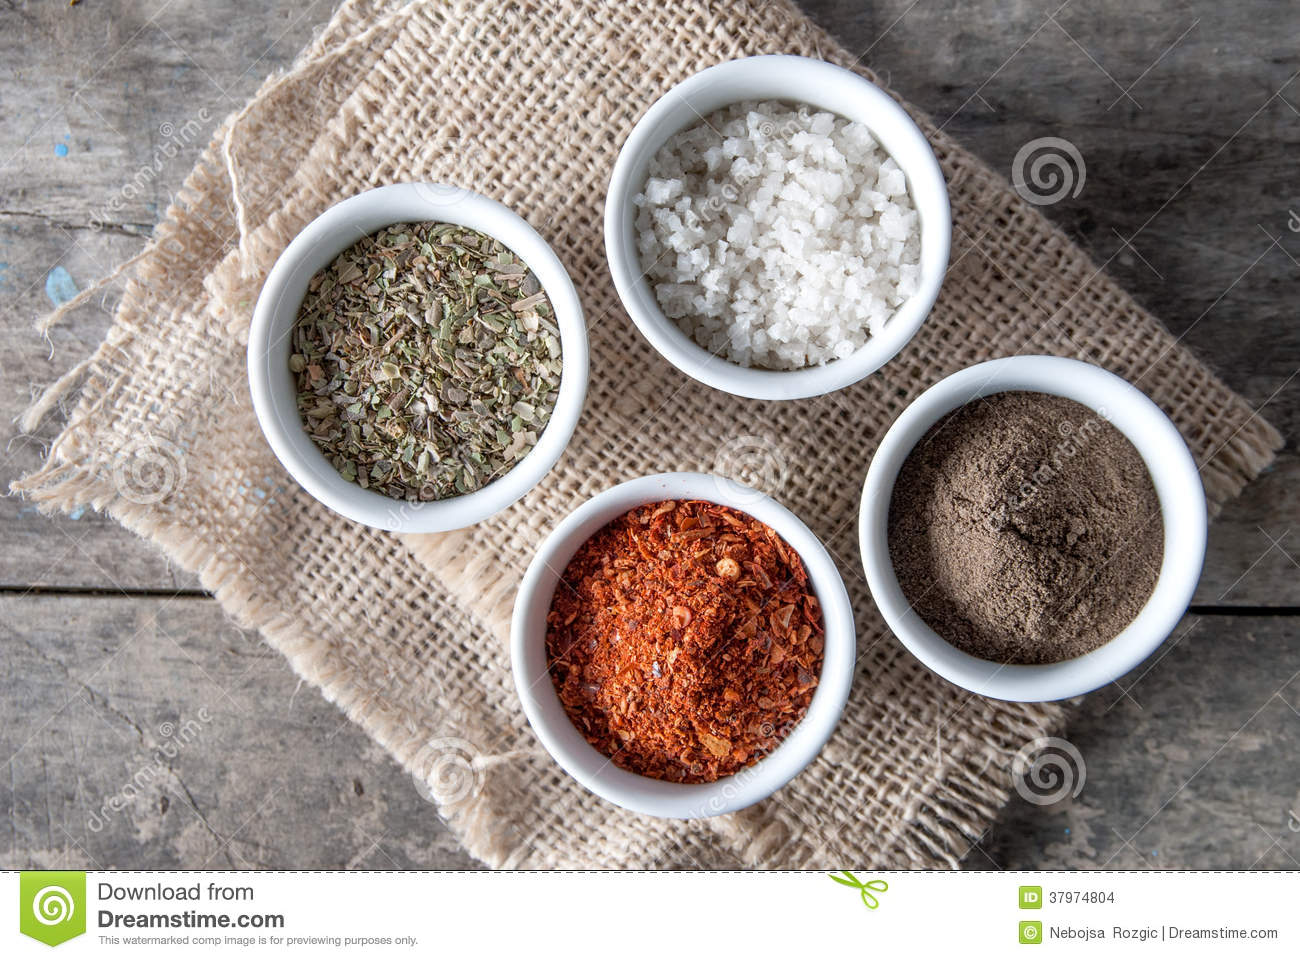 Pepper, Oregano And Cooking Salt In Bowls